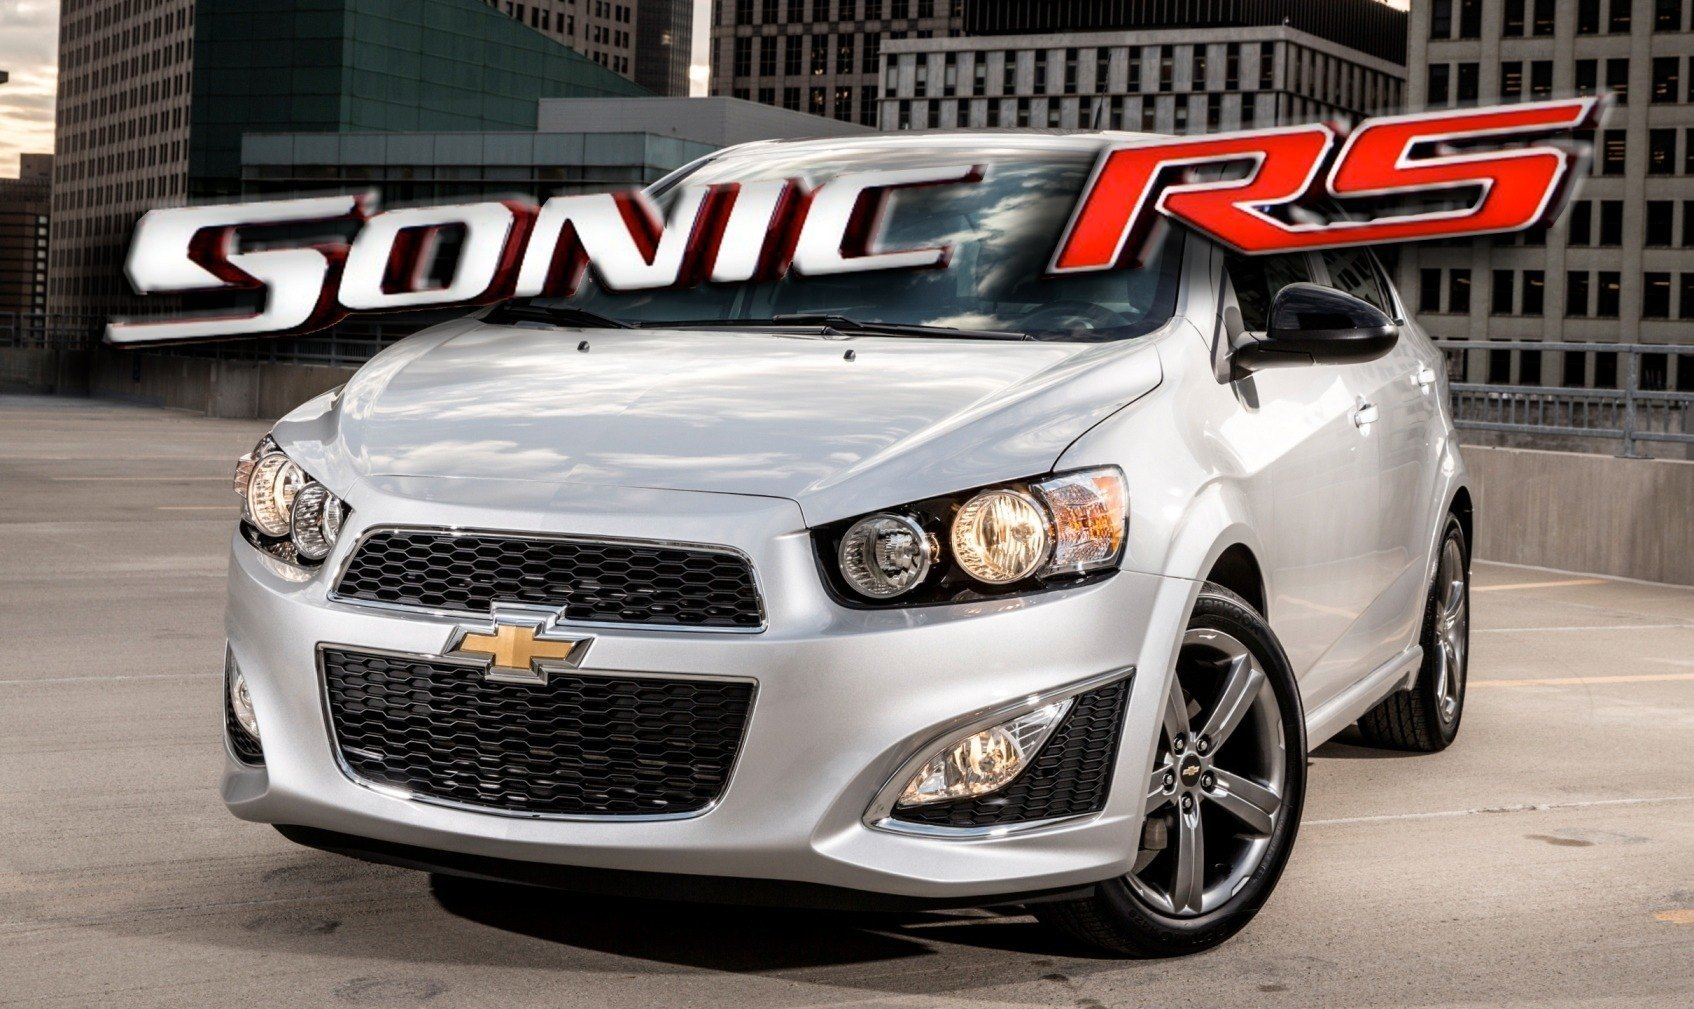 2015 Chevy Sonic RS Sedan and LTZ Dusk Join Cool RS Hatch With Dark Rims, Body Kit and Sporty ...